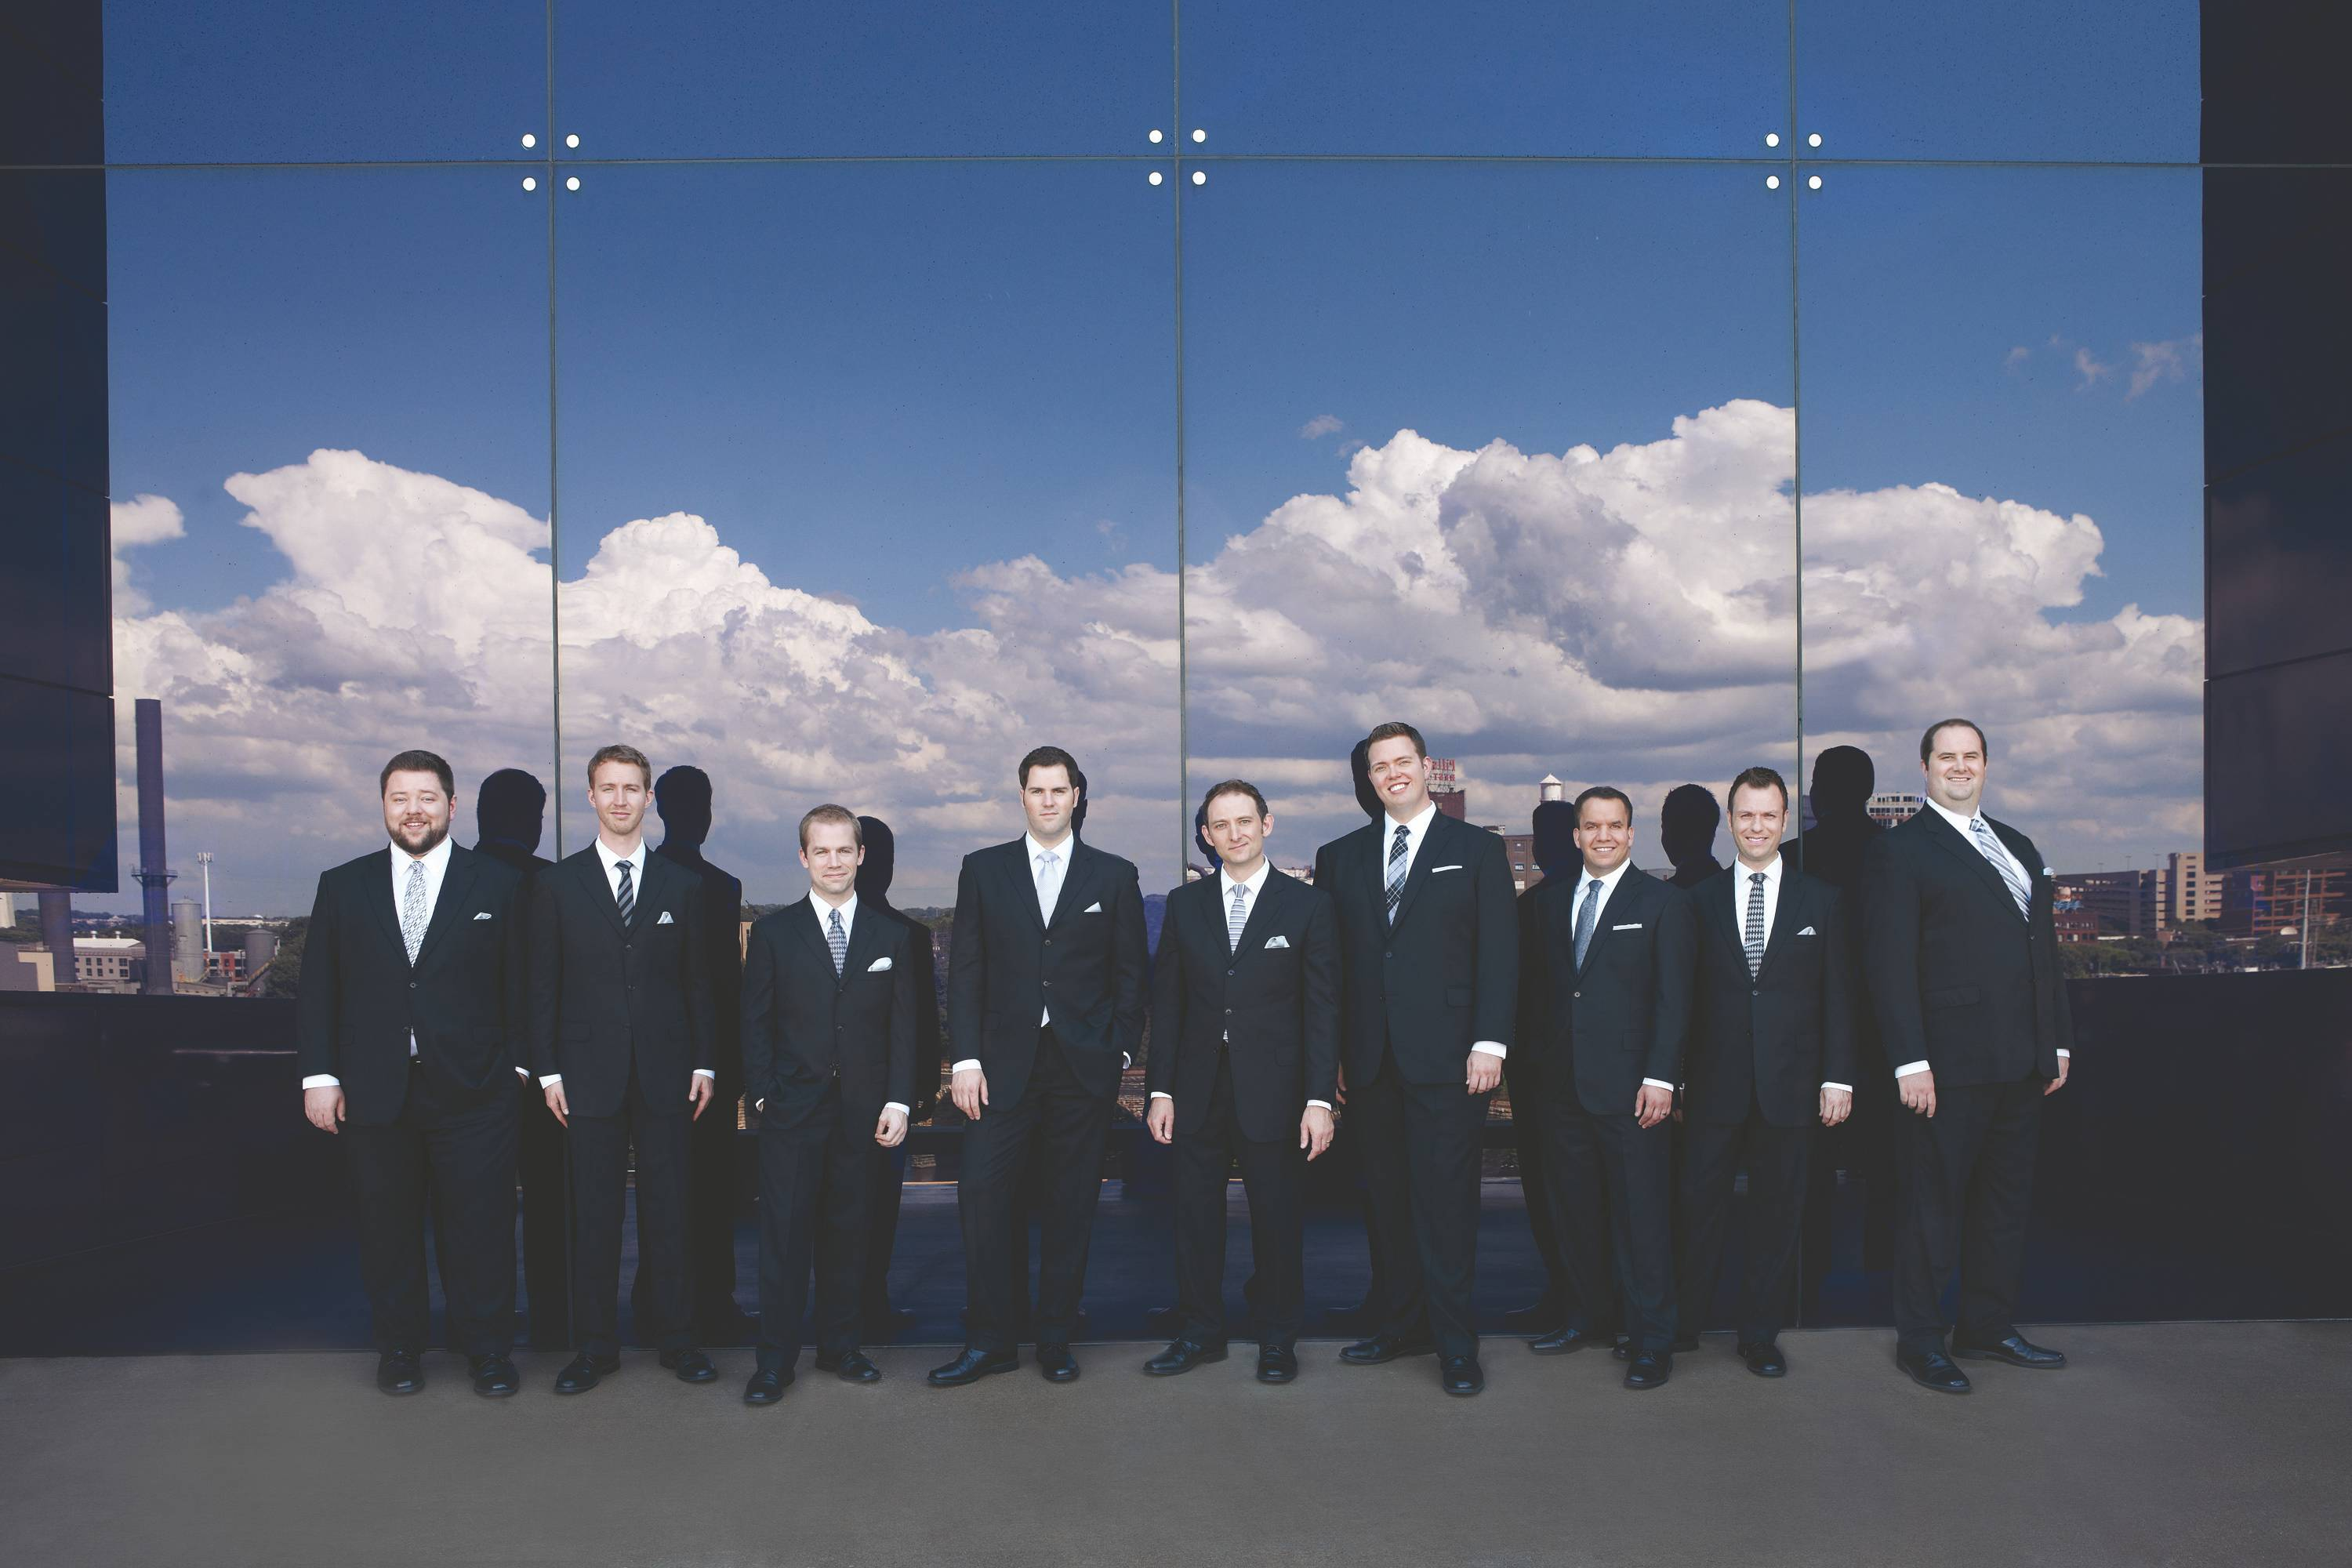 Cantus, a premiere men's vocal ensemble from the Twin Cities, will sing at CLC on Jan. 26.